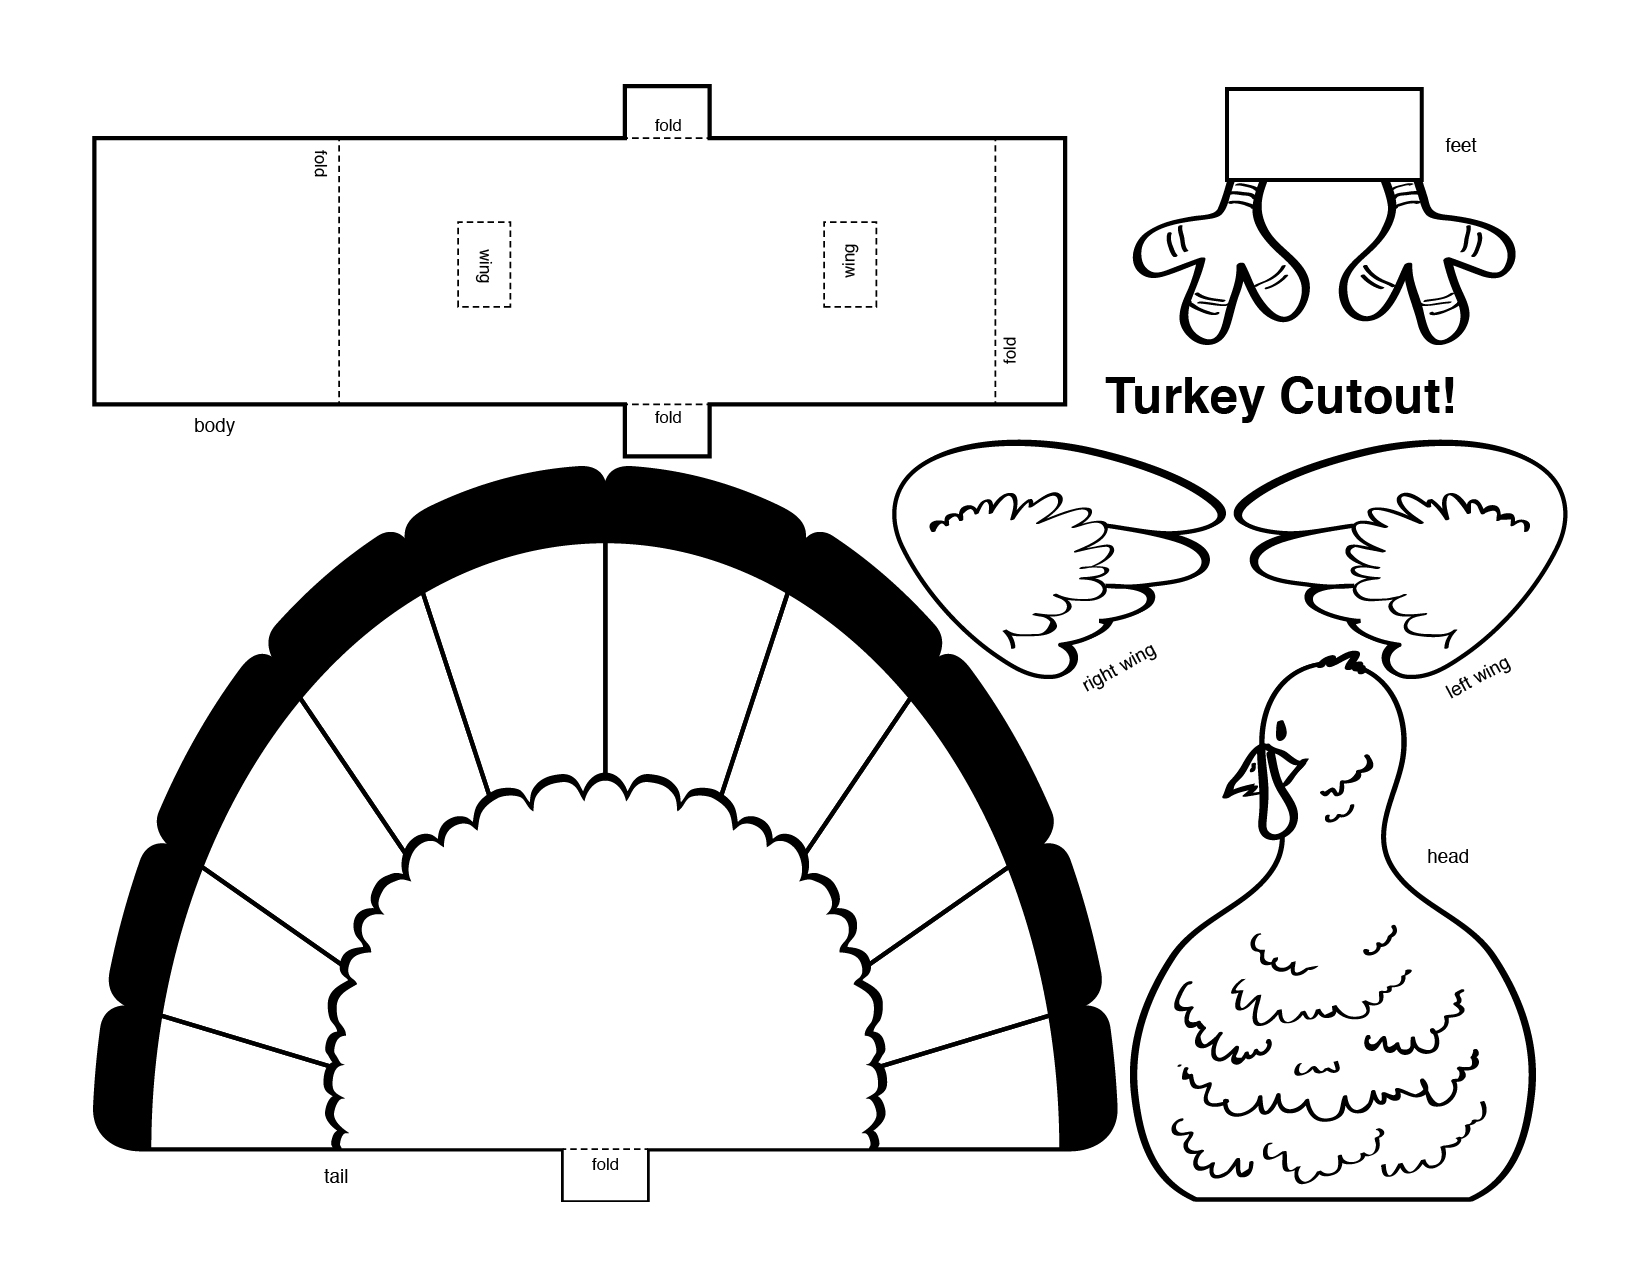 turkey head coloring page - thanksgiving 3d turkey cutout downloadable art project for